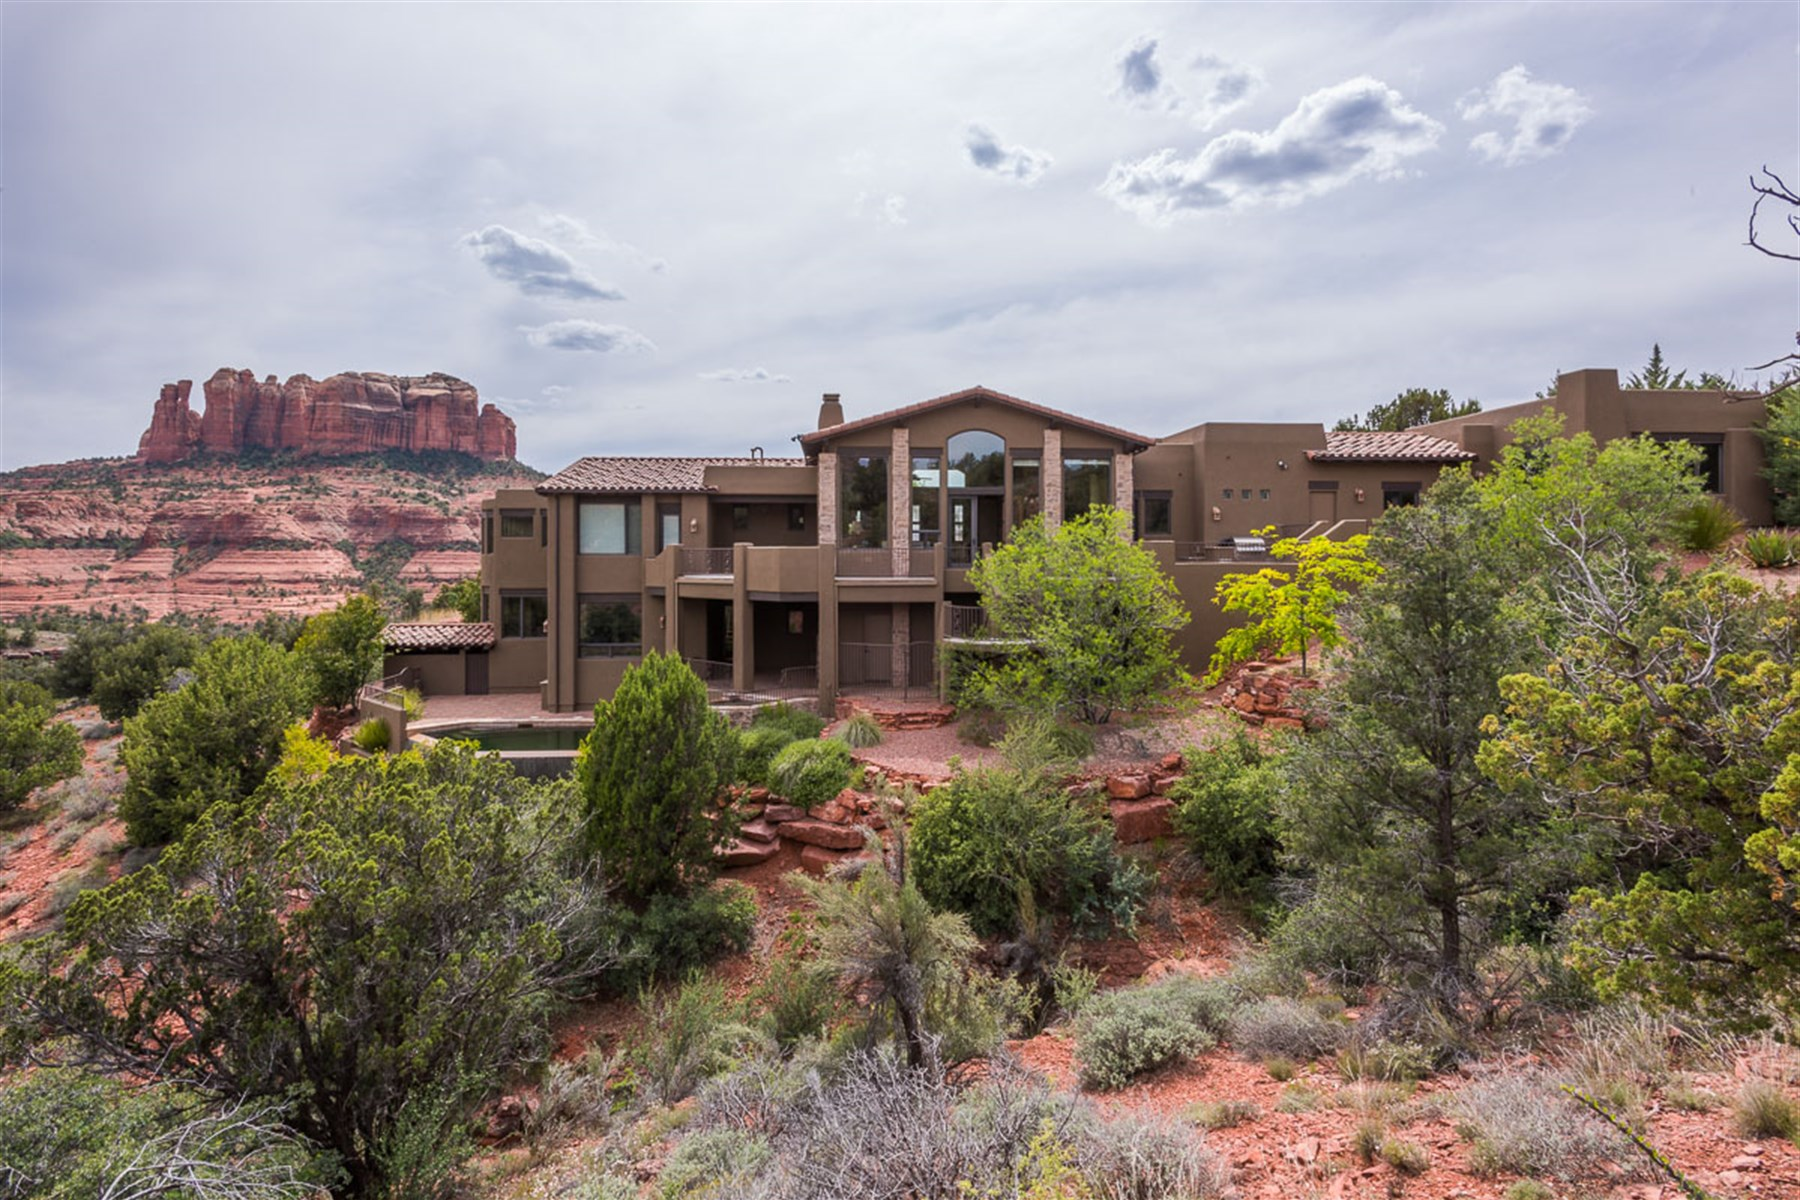 Villa per Vendita alle ore Sante Fe luxury home sits elevated in this magical environment of Back O' Beyond 15 ROSEMARY CT Sedona, Arizona, 86336 Stati Uniti